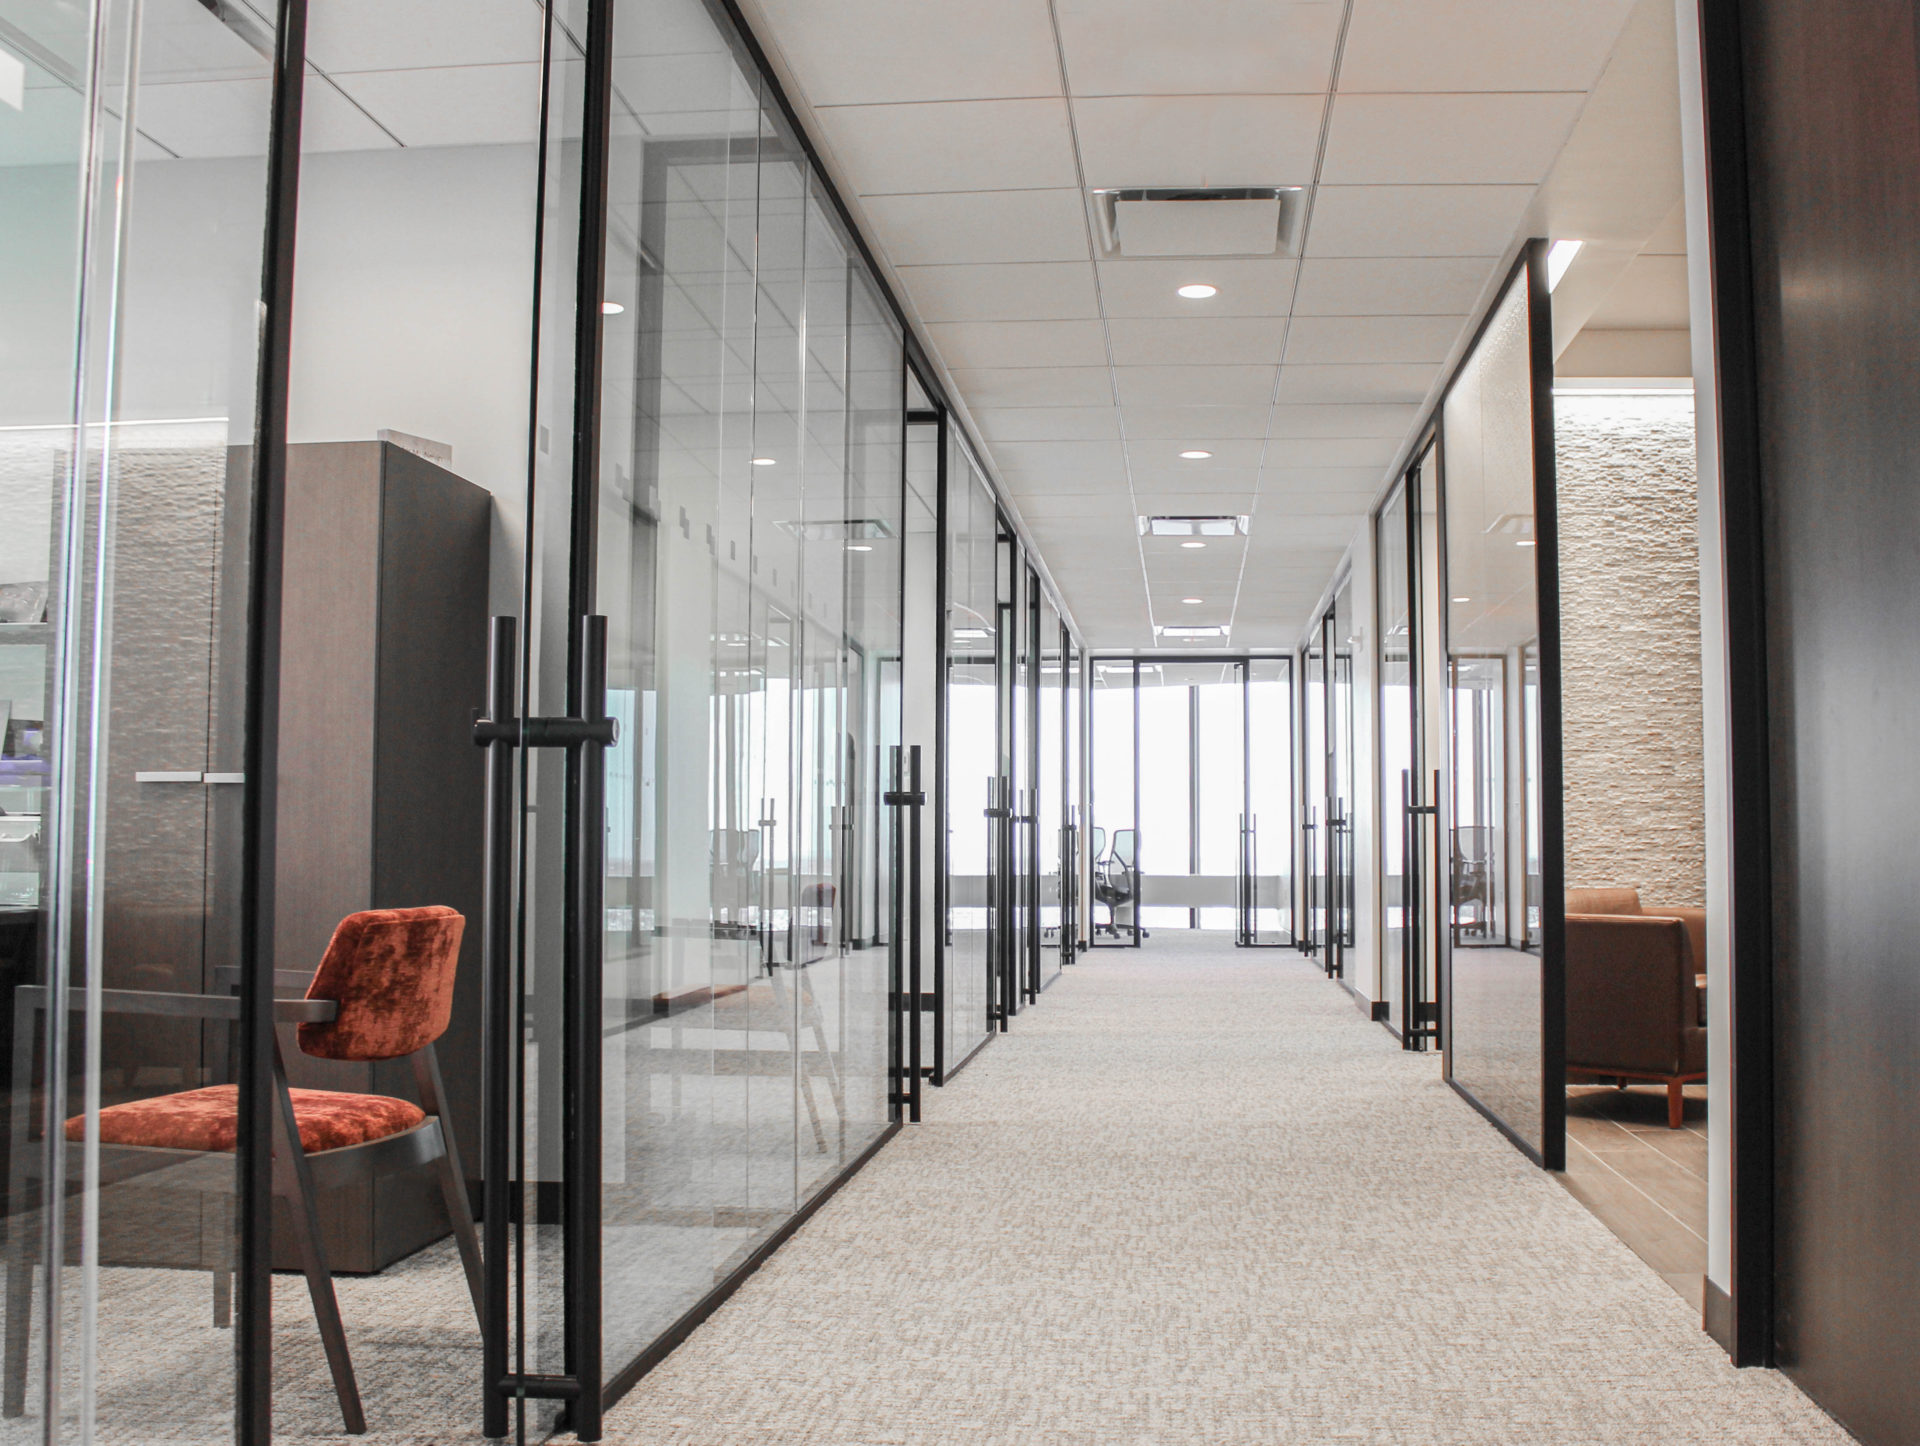 glass front offices create light and bright hallways that are flooded with natural light.